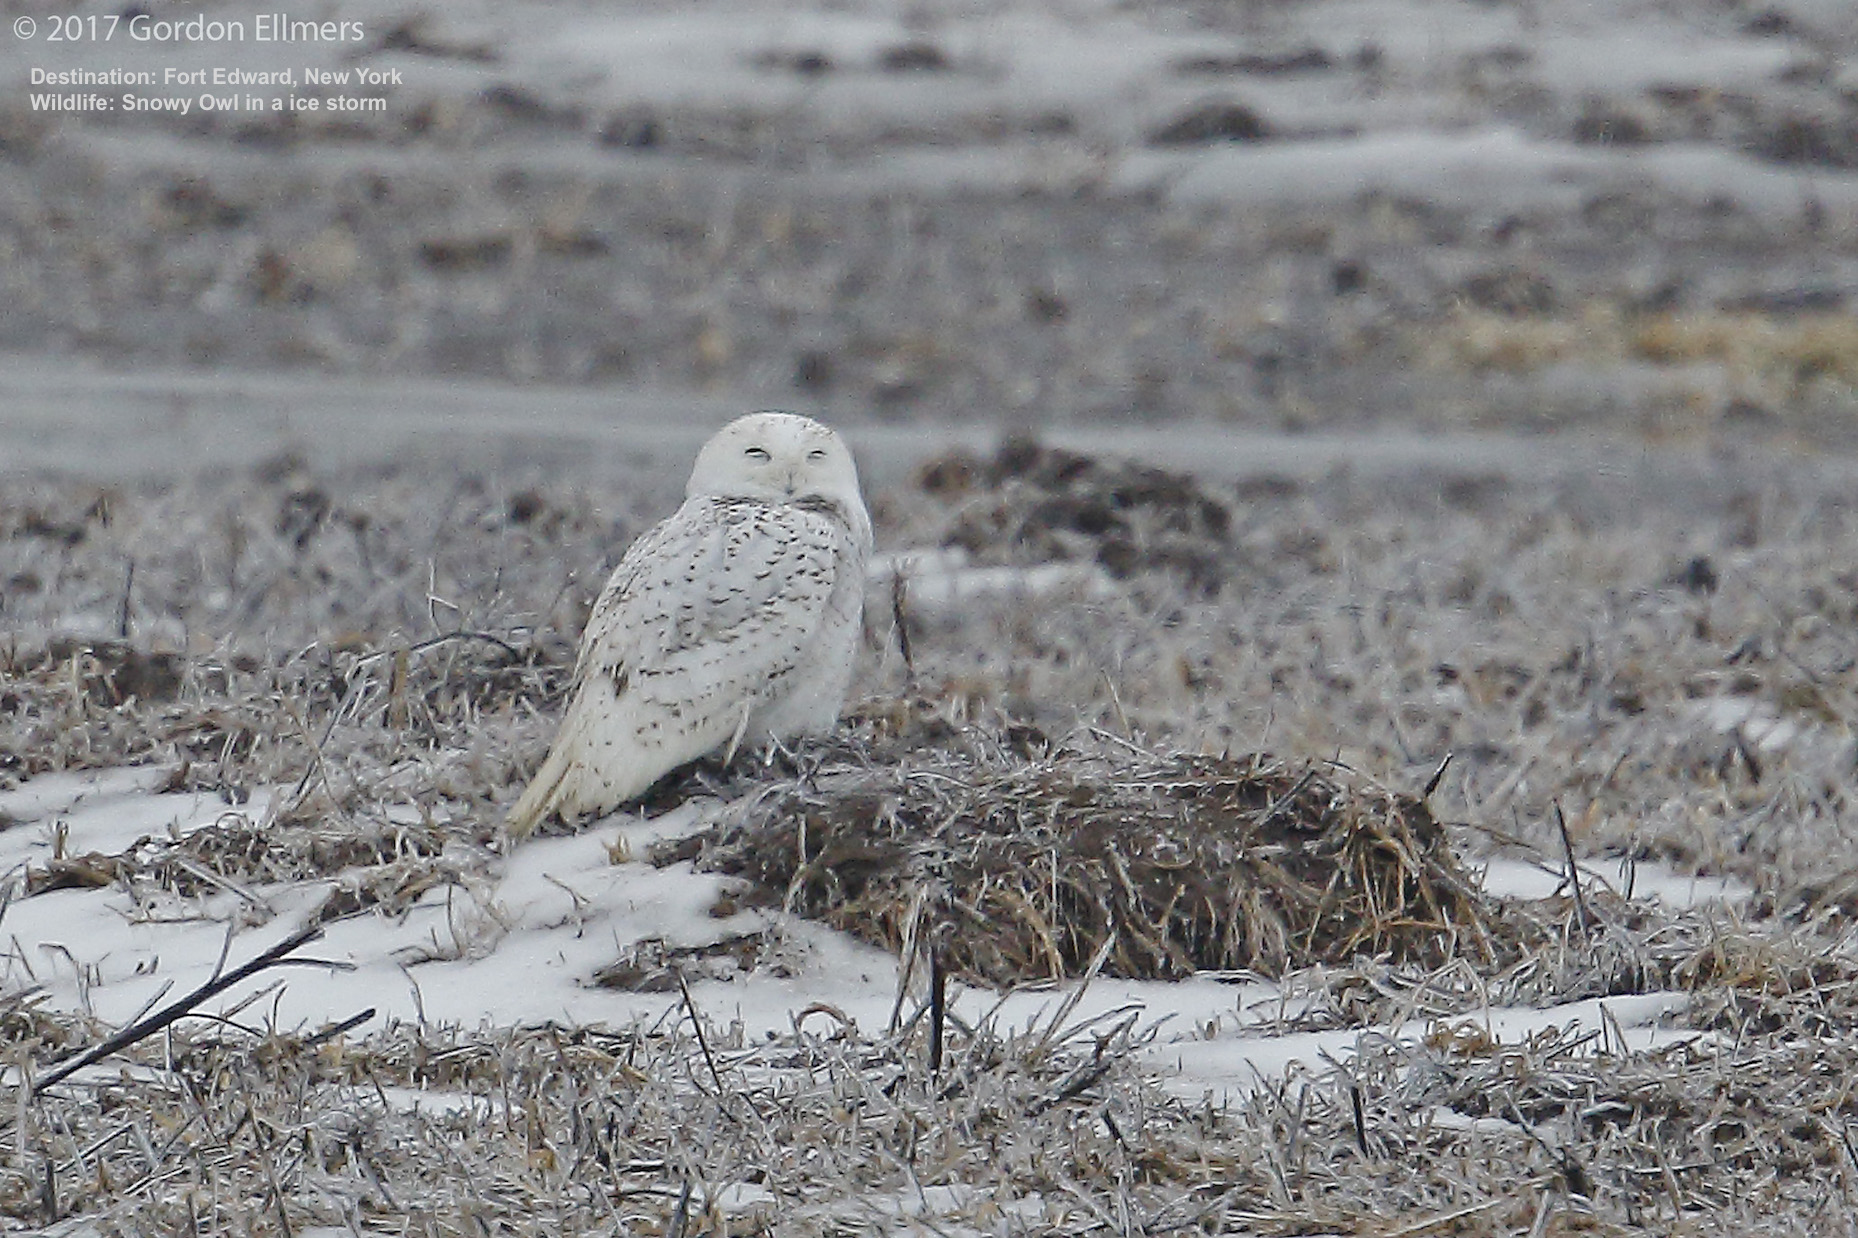 SNOWY OWL BRAVES A WINTER ICE STORM. LOOK CLOSELY, ALTHOUGH THEY ARE NOT THE LARGEST, EXTRA INSULATION MAKE THEM THE HEAVIEST OWL SPECIES. IMAGE: GORDON ELLMERS.